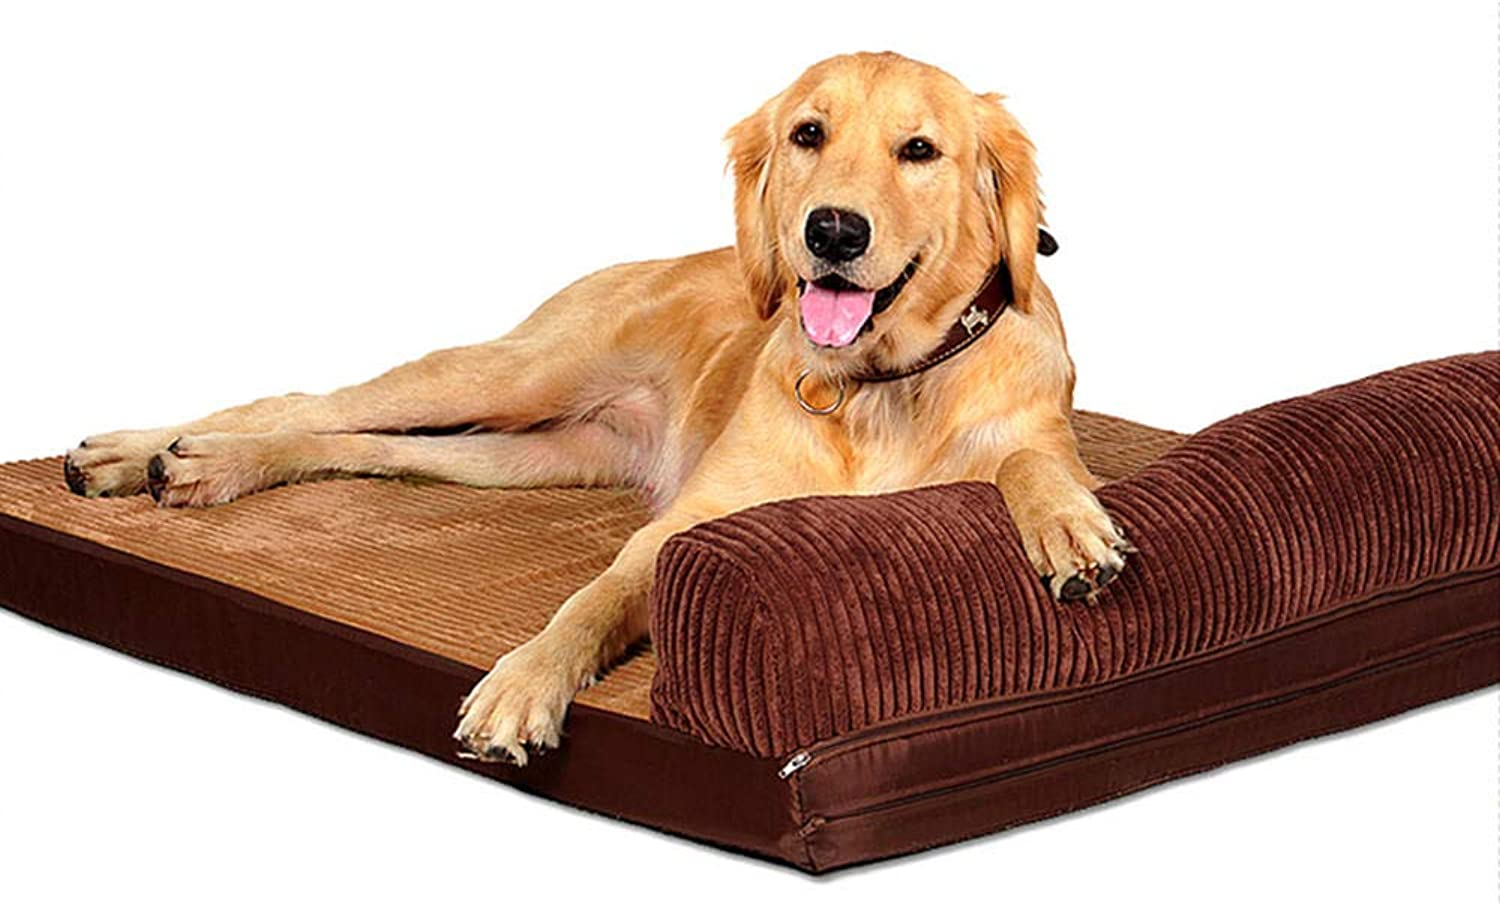 CHYLYM Warm cooling cat dog bed kennel cat litter removable dog mat large small medium large dog sofa brown singlesided